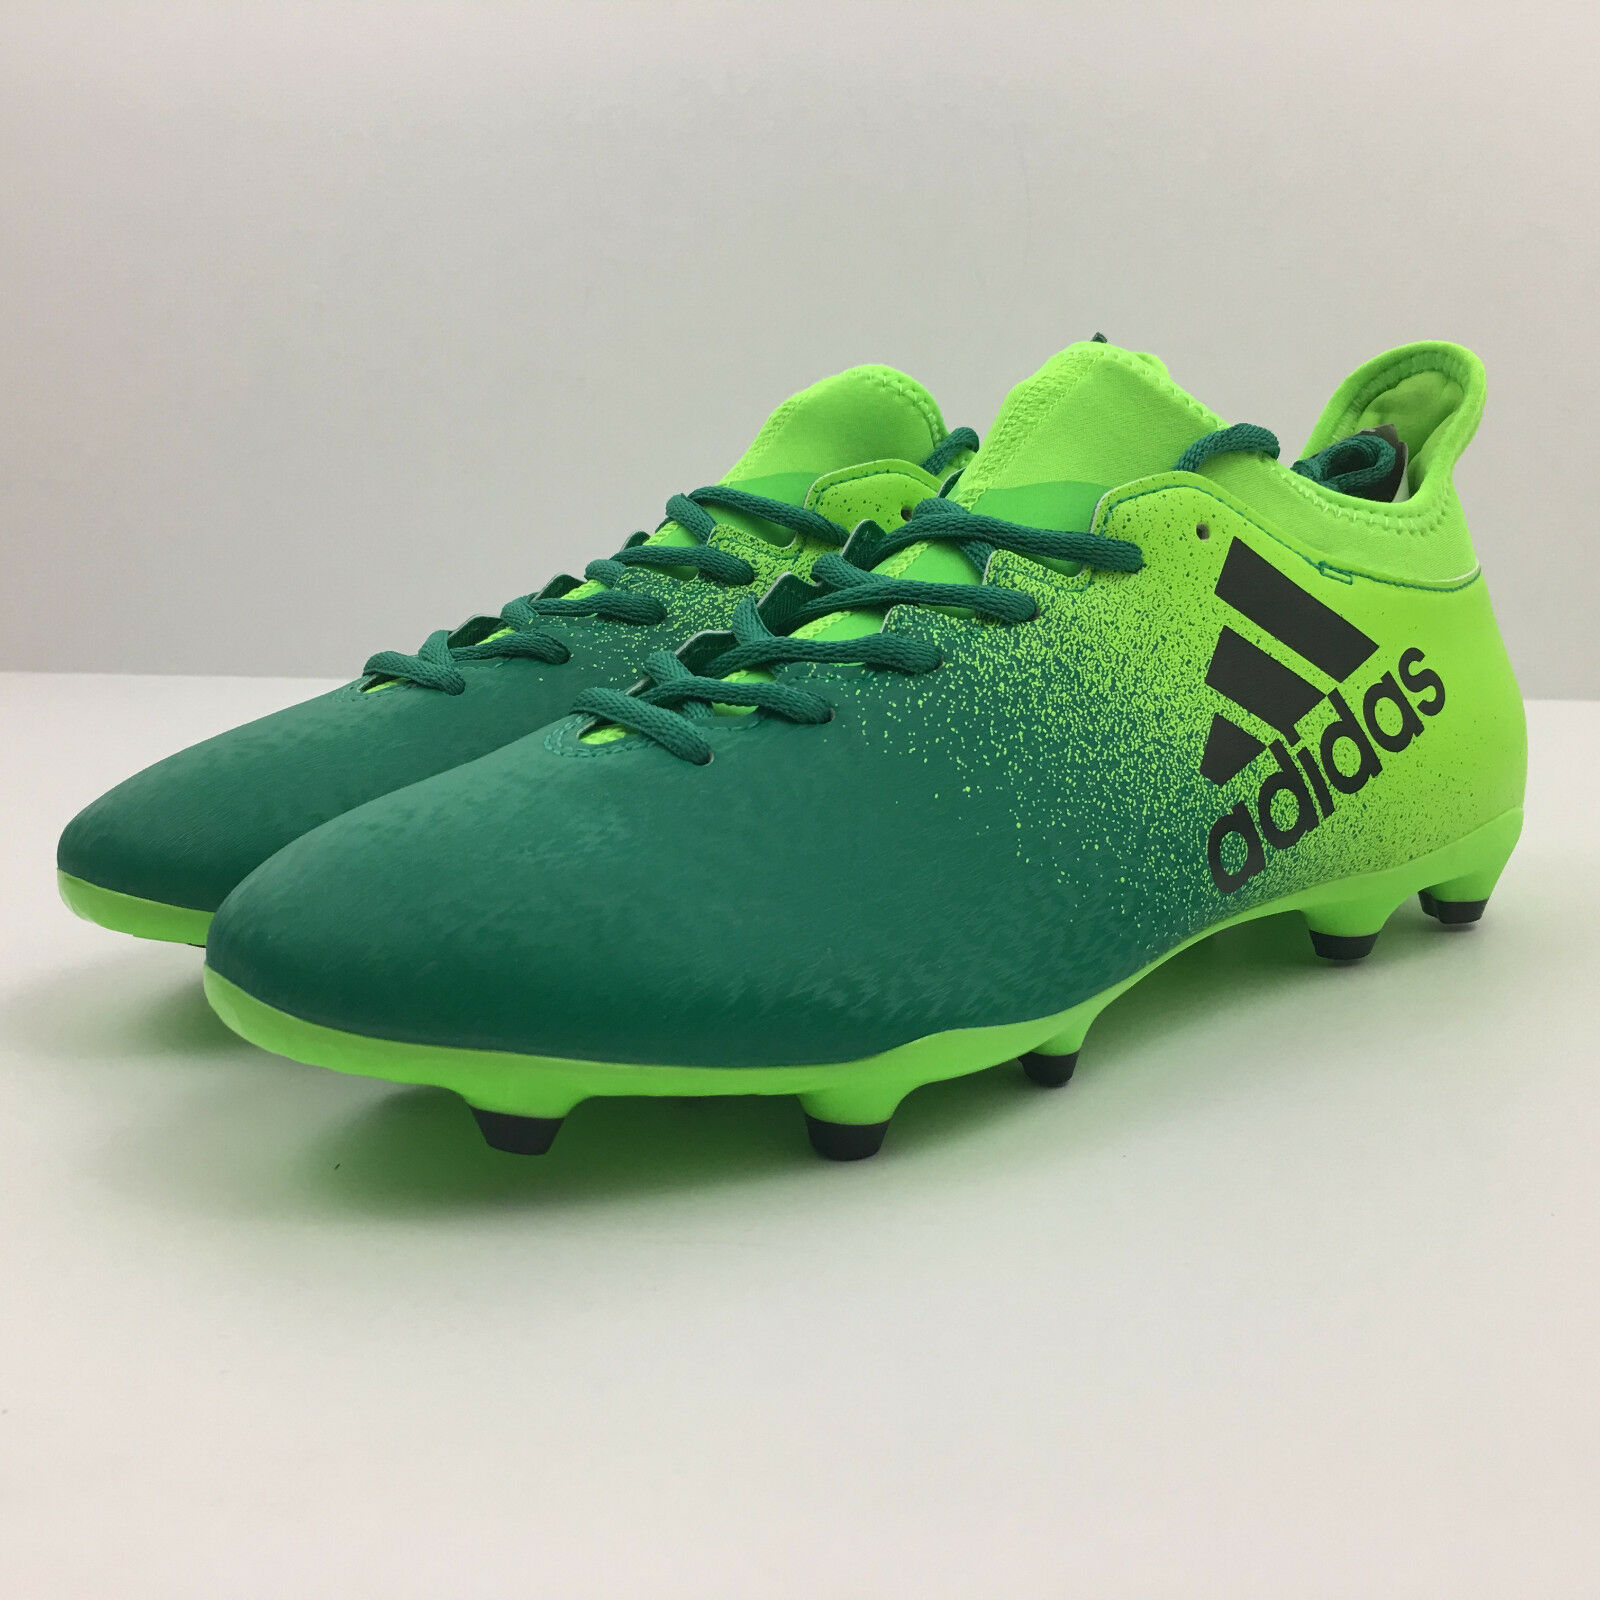 ADIDAS Men's X 16.3 FG Soccer Cleats Green Black Core Green Size 10.5 (BB5855)